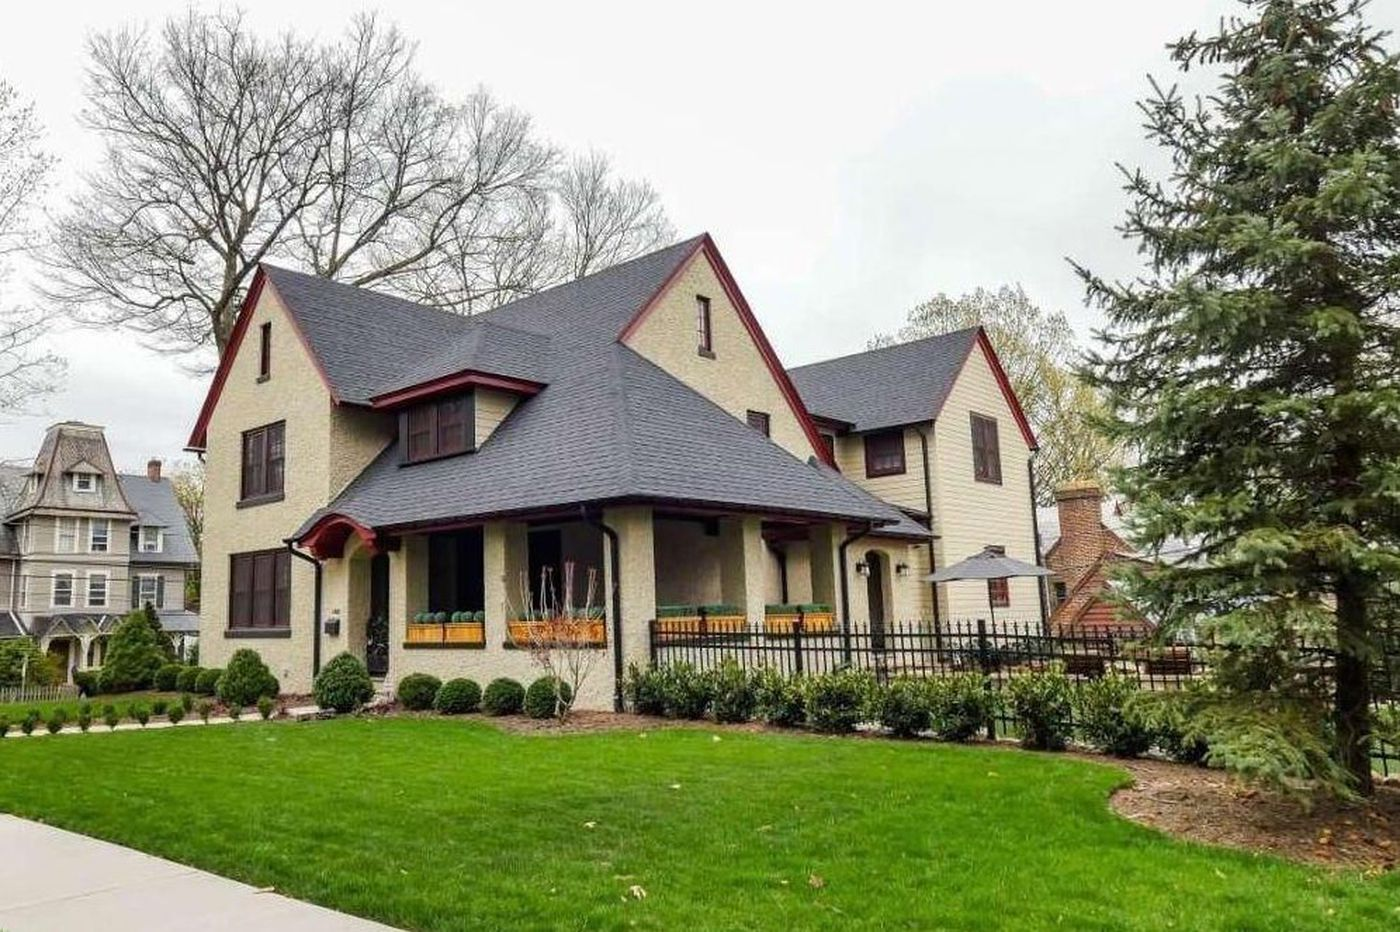 On the Market: Historic renovation in Doylestown for $1.7M